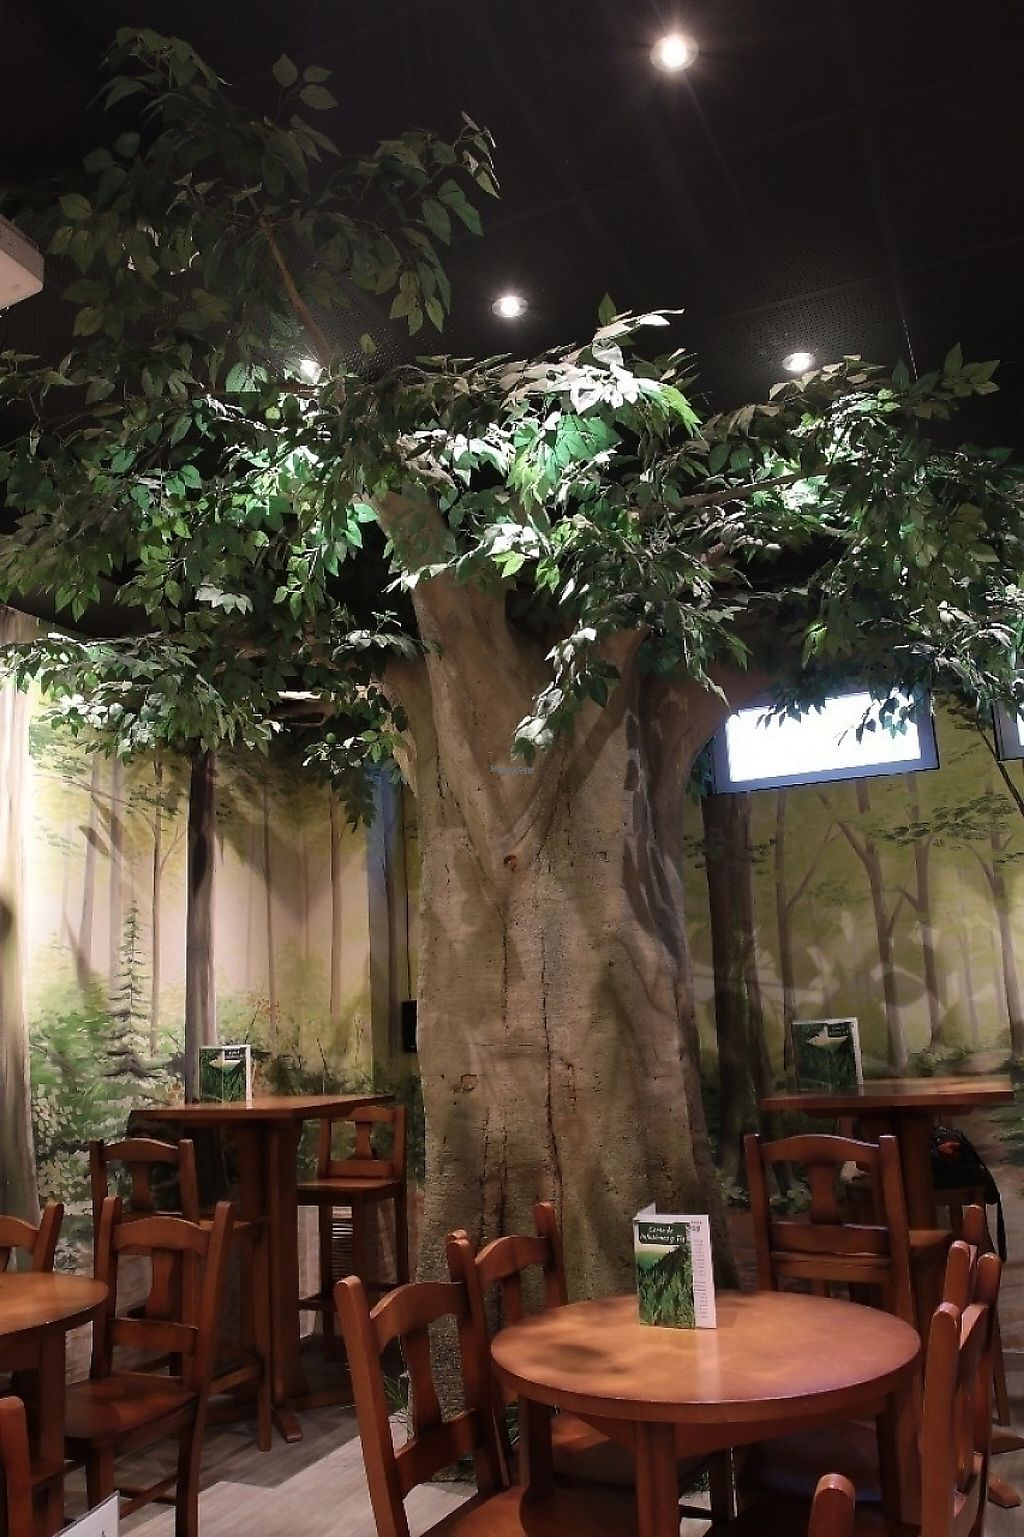 """Photo of CLOSED: Teteria El Bosque  by <a href=""""/members/profile/JorgeEscartin"""">JorgeEscartin</a> <br/>Our very own tree <br/> November 9, 2016  - <a href='/contact/abuse/image/71554/187632'>Report</a>"""